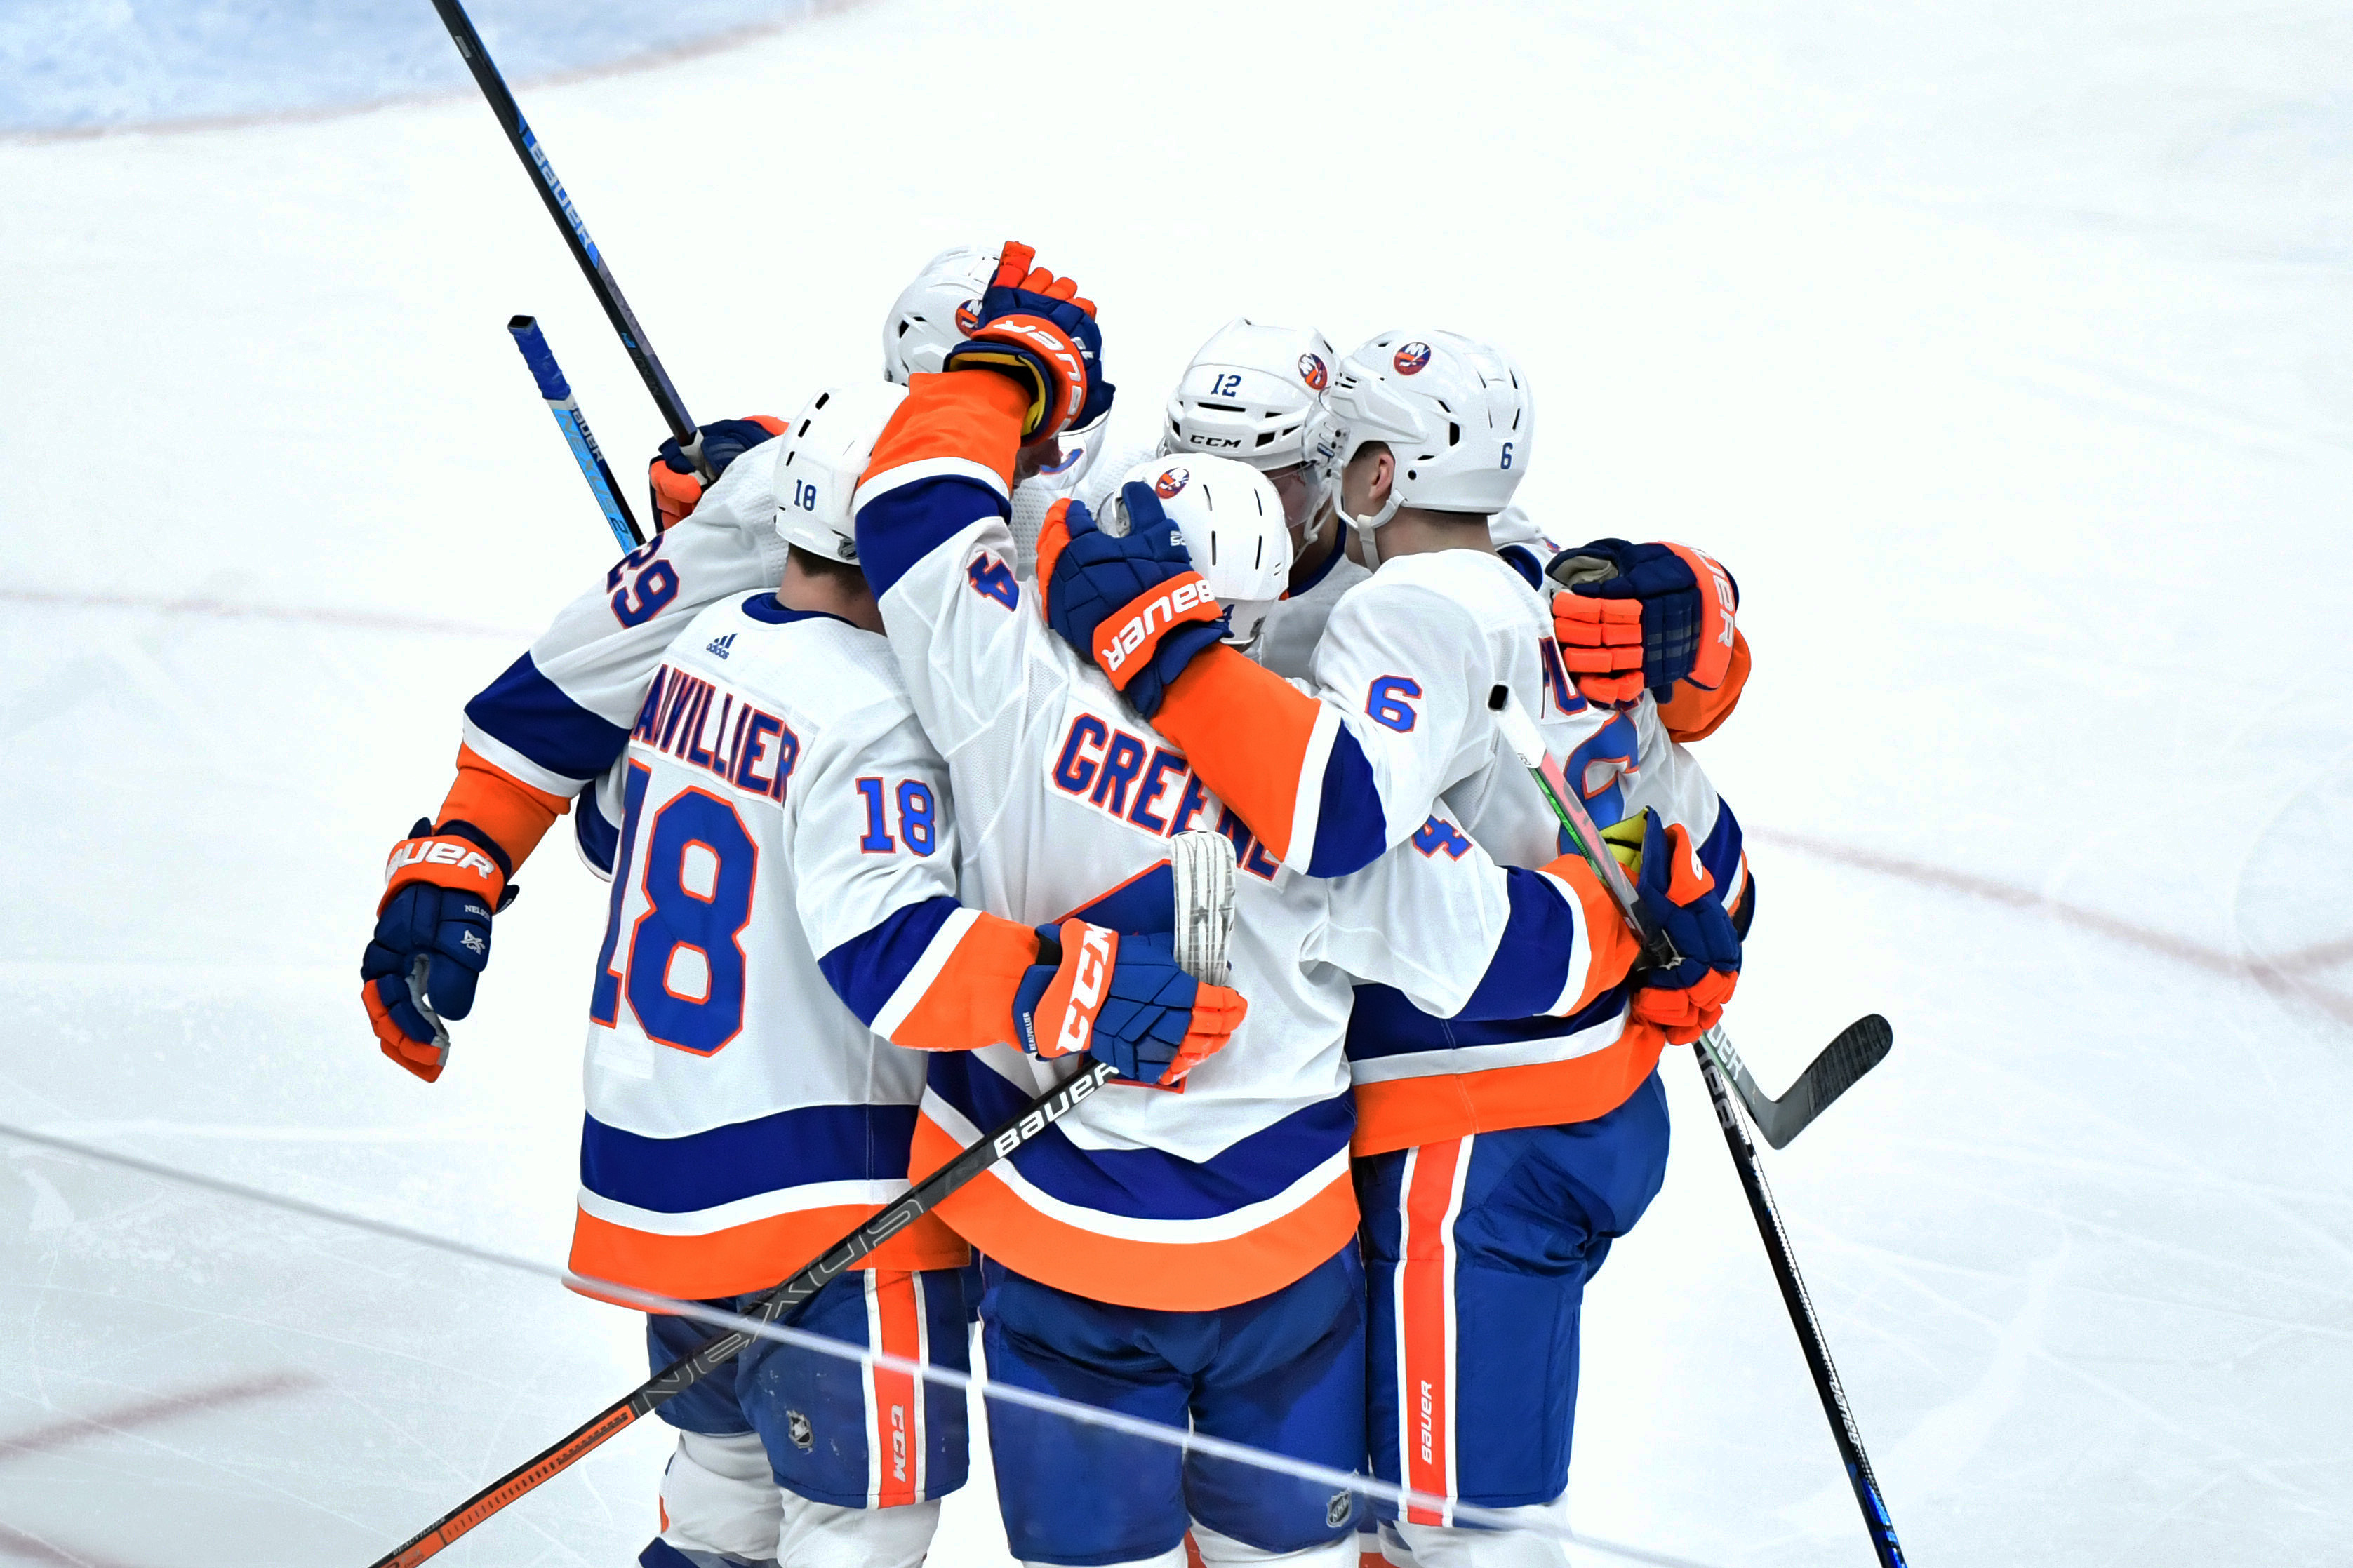 Feb 17, 2020; Glendale, Arizona, USA; New York Islanders left wing Anthony Beauvillier (18) celebrates with teammates after scoring a goal against the Arizona Coyotes in the third period at Gila River Arena. Mandatory Credit: Matt Kartozian-USA TODAY Sports